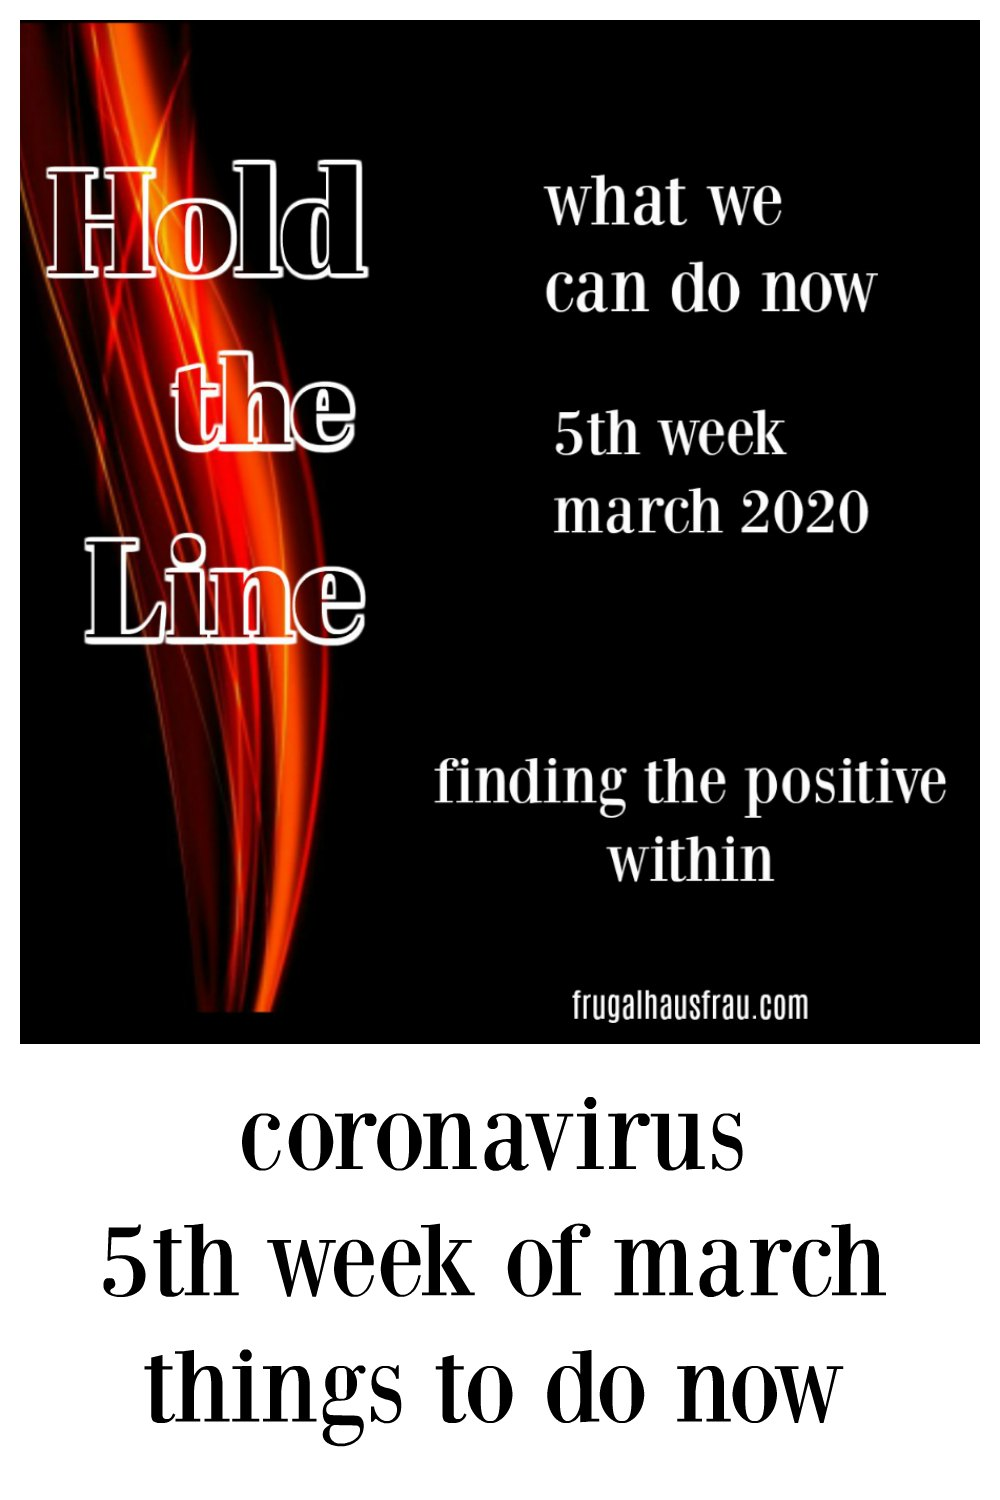 What to do Now (5th Week of March) finding the positive and small things we can do...we have more power than we think in making an impact. #CoronavirusStayIn